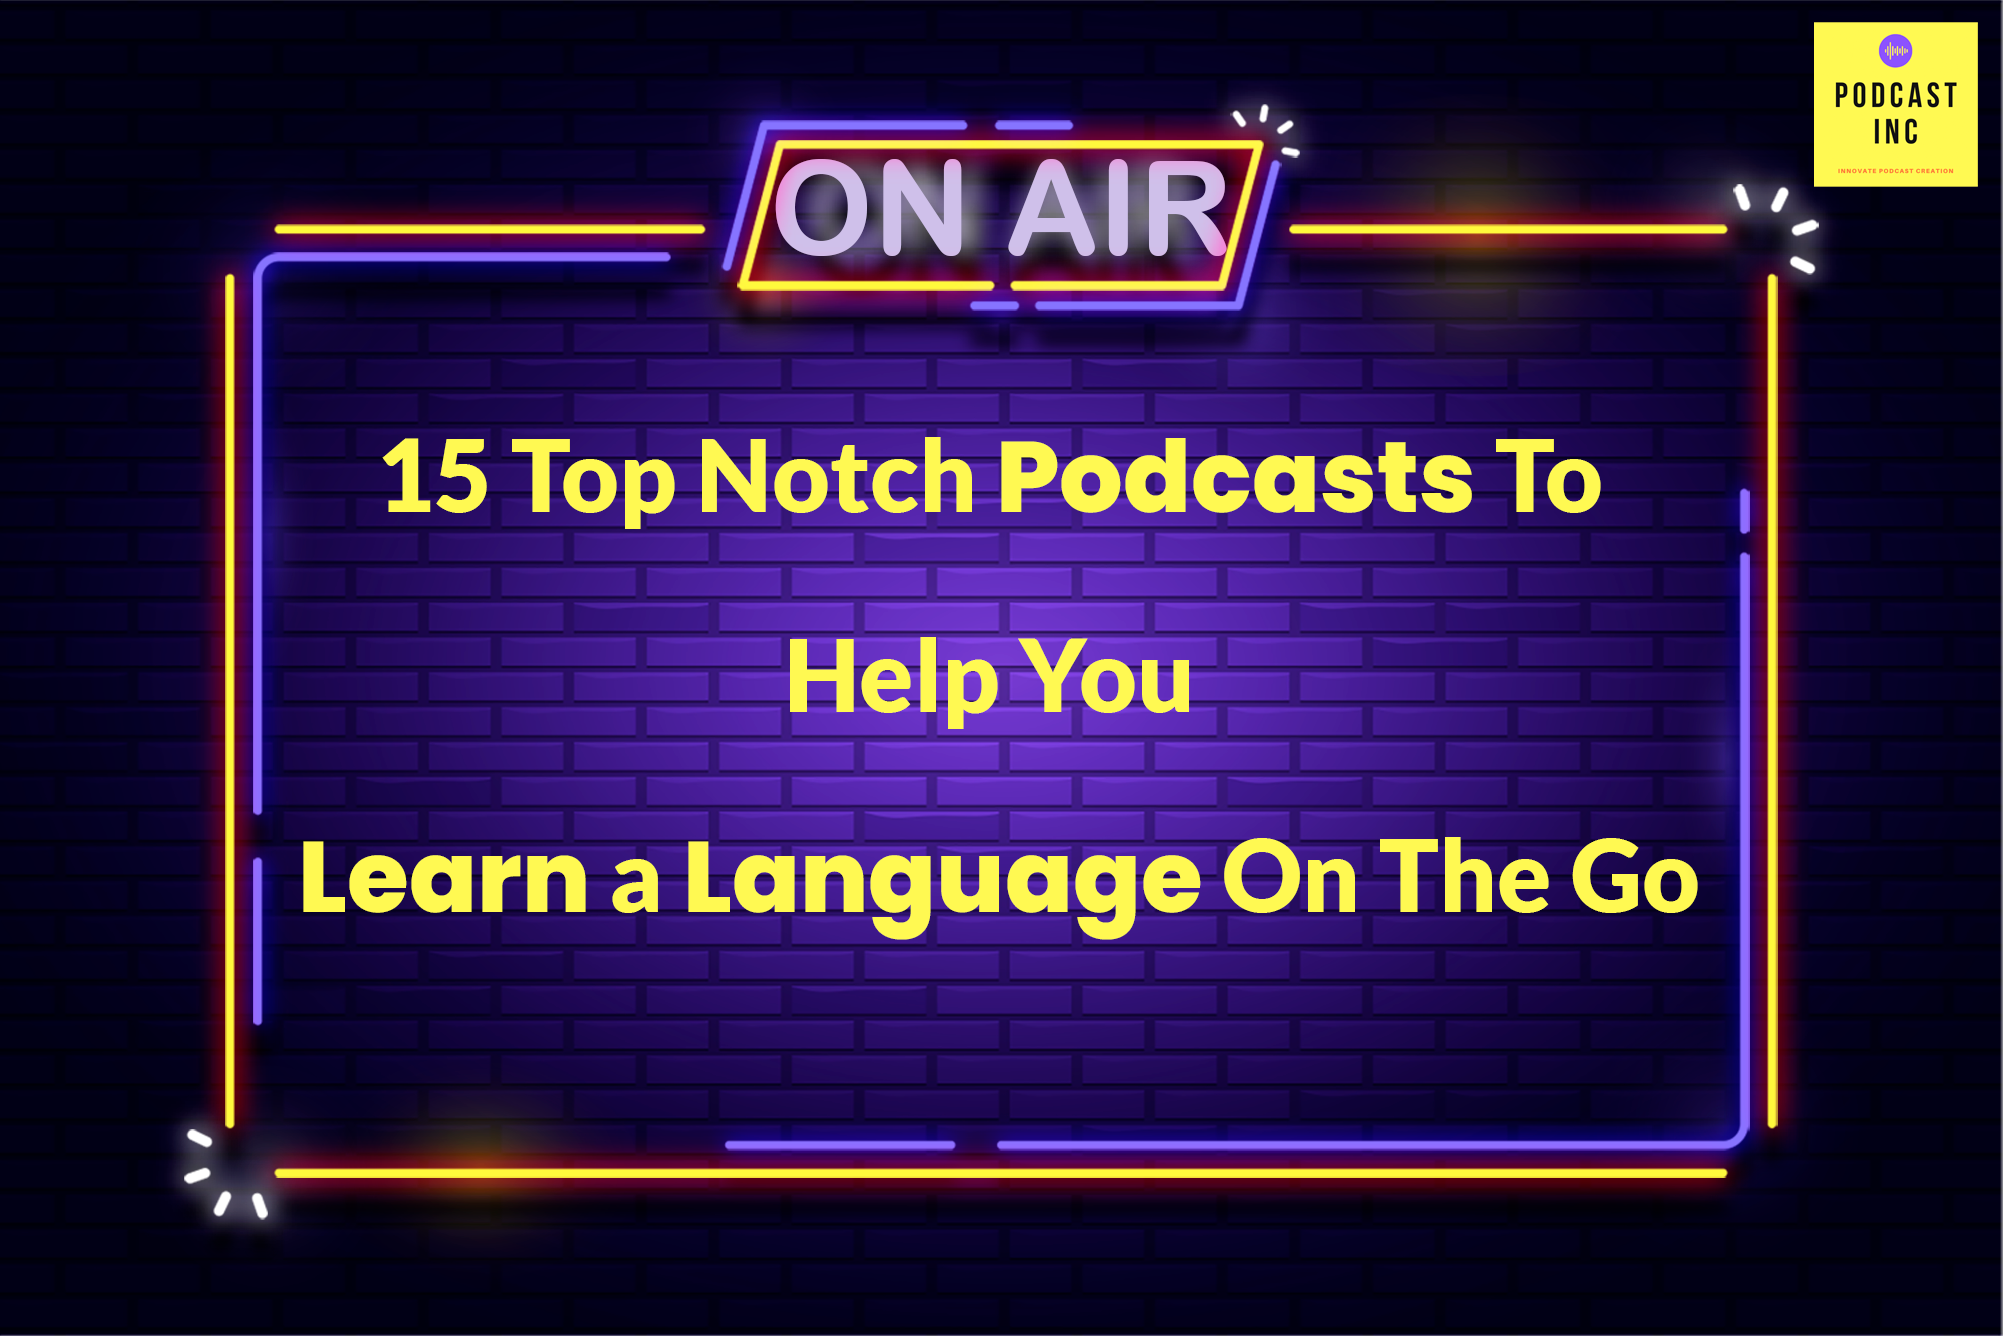 15 Top Notch Podcasts To Help You Learn A Language On The Go